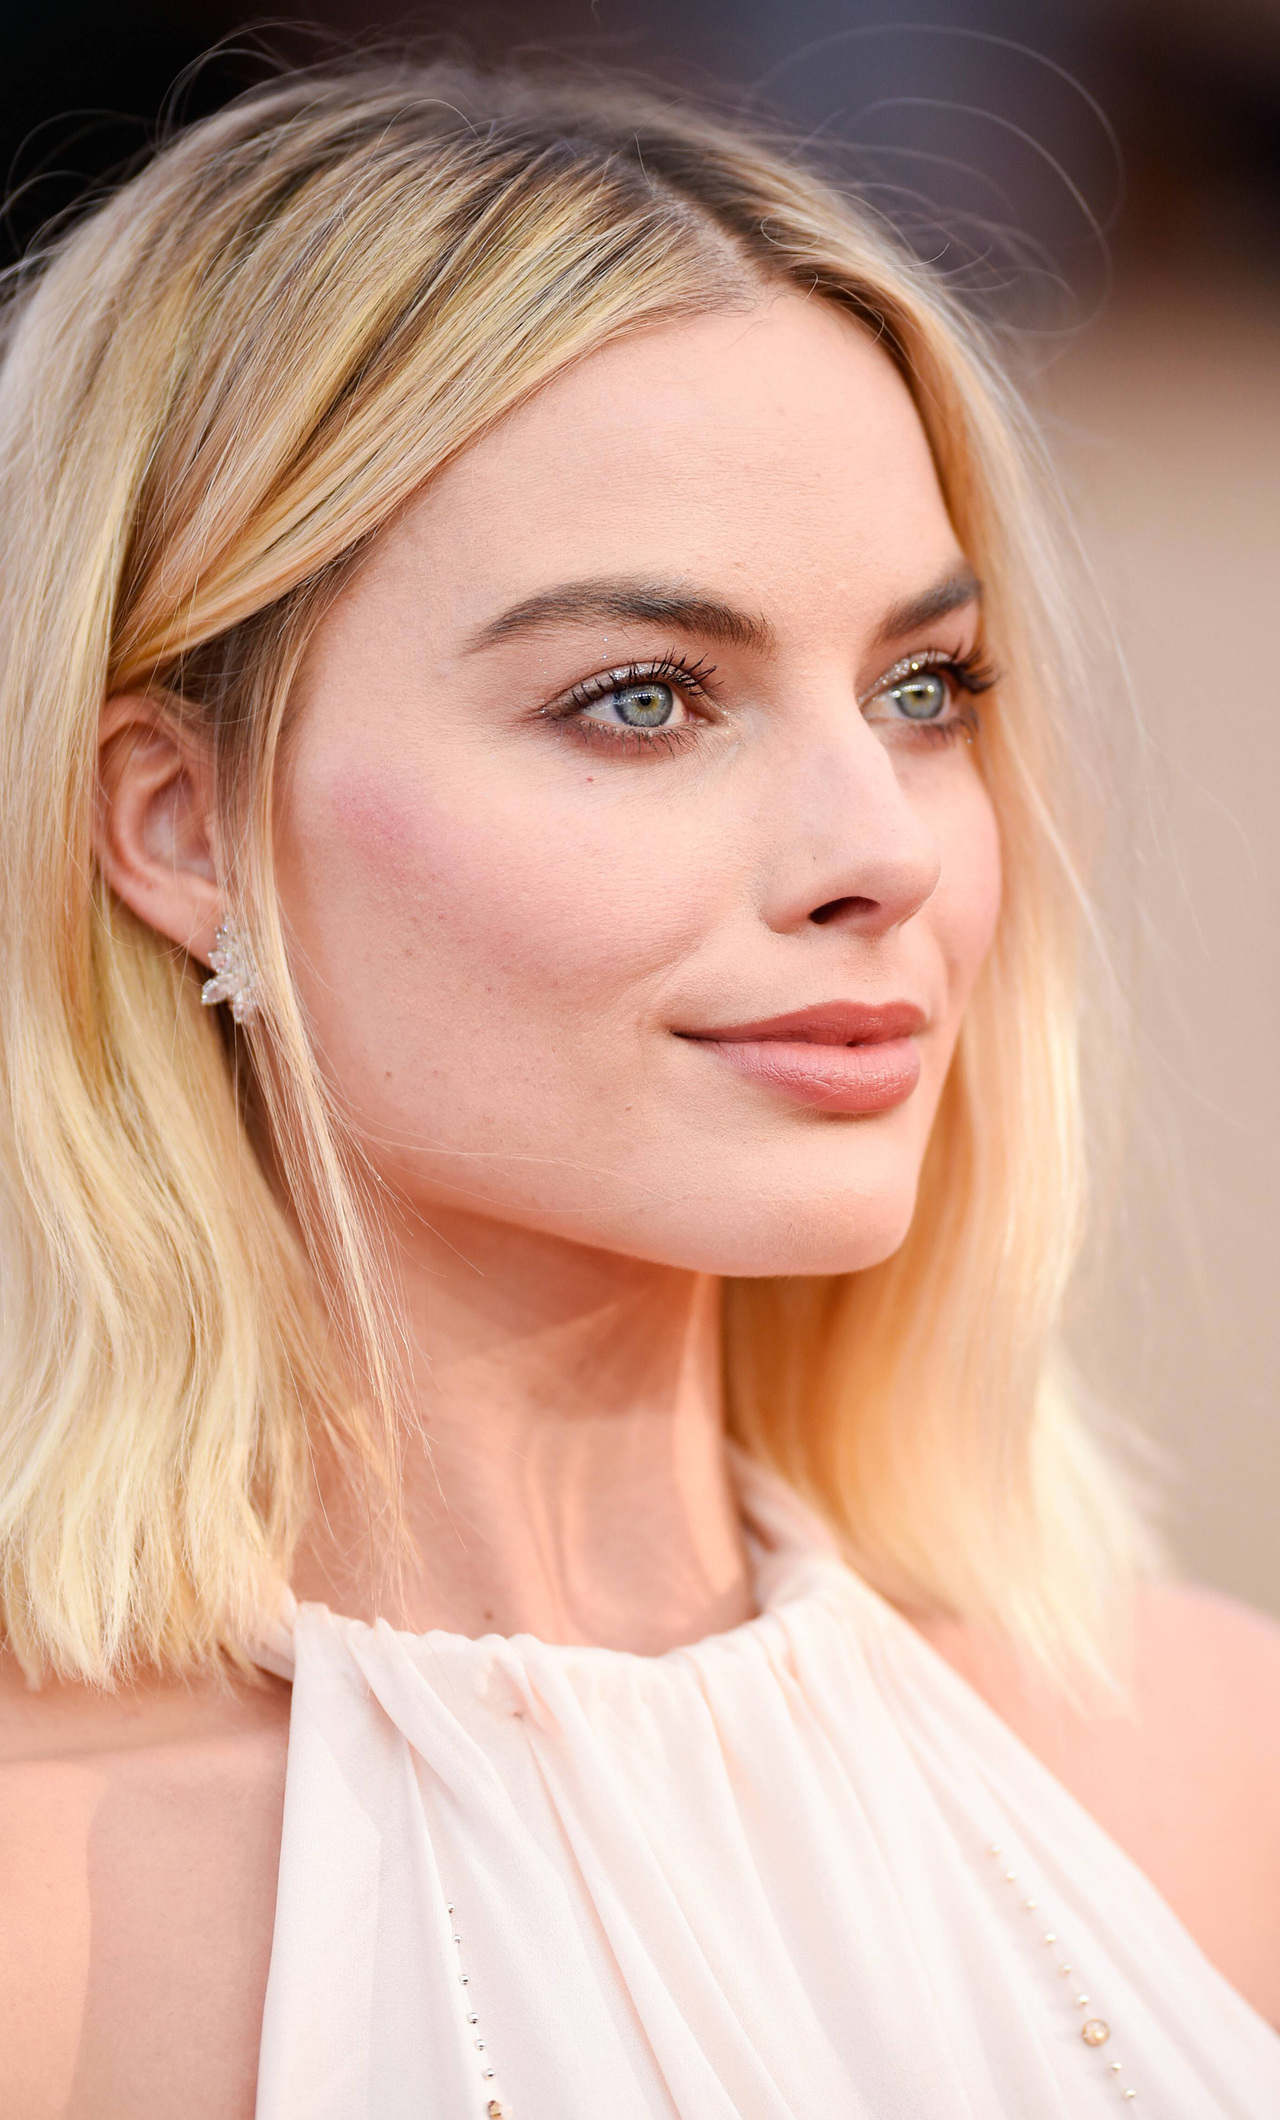 margot-robbie-eyes-4z.jpg